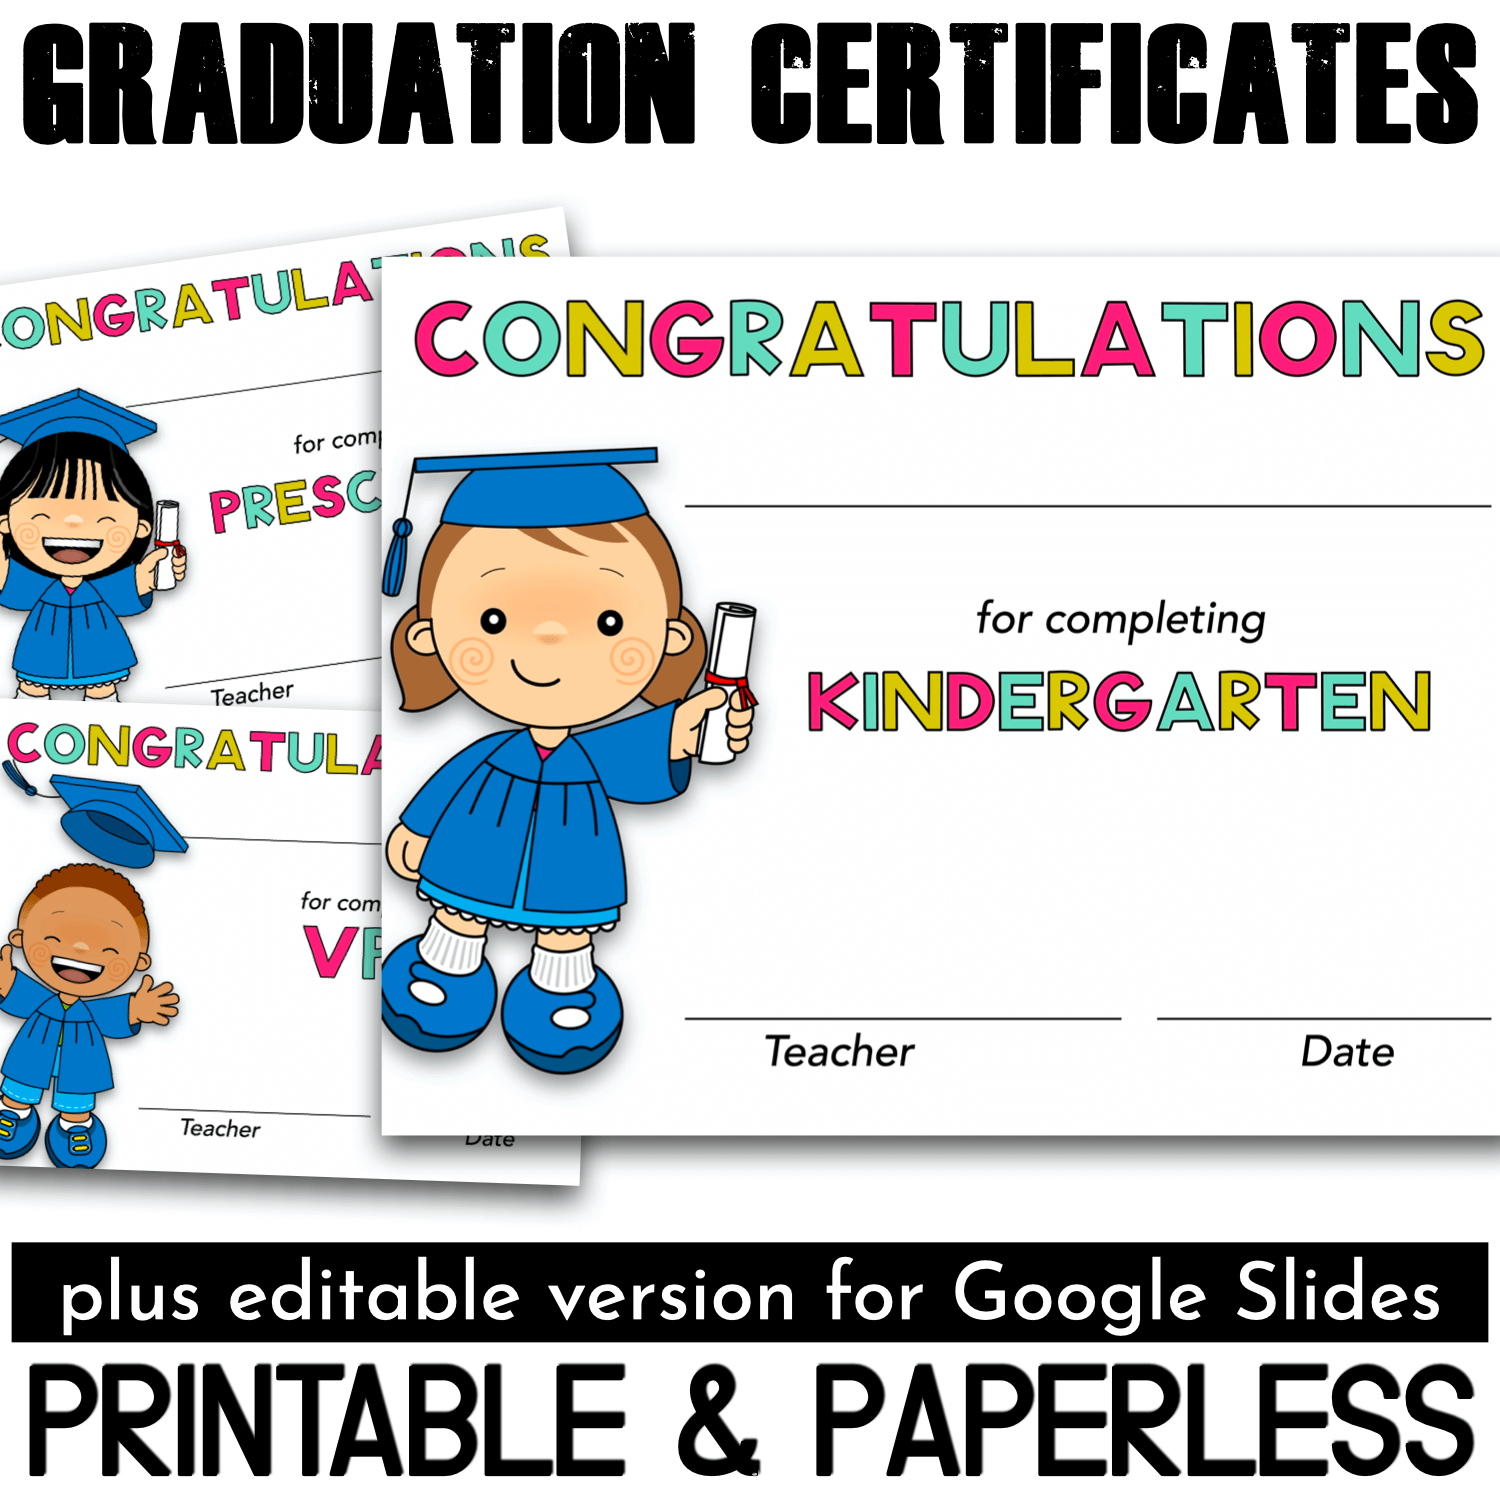 Are you looking for bright graduation certificates for your students? Do they need to be editable? Something perfect for the classroom and distance learning? You've found them!